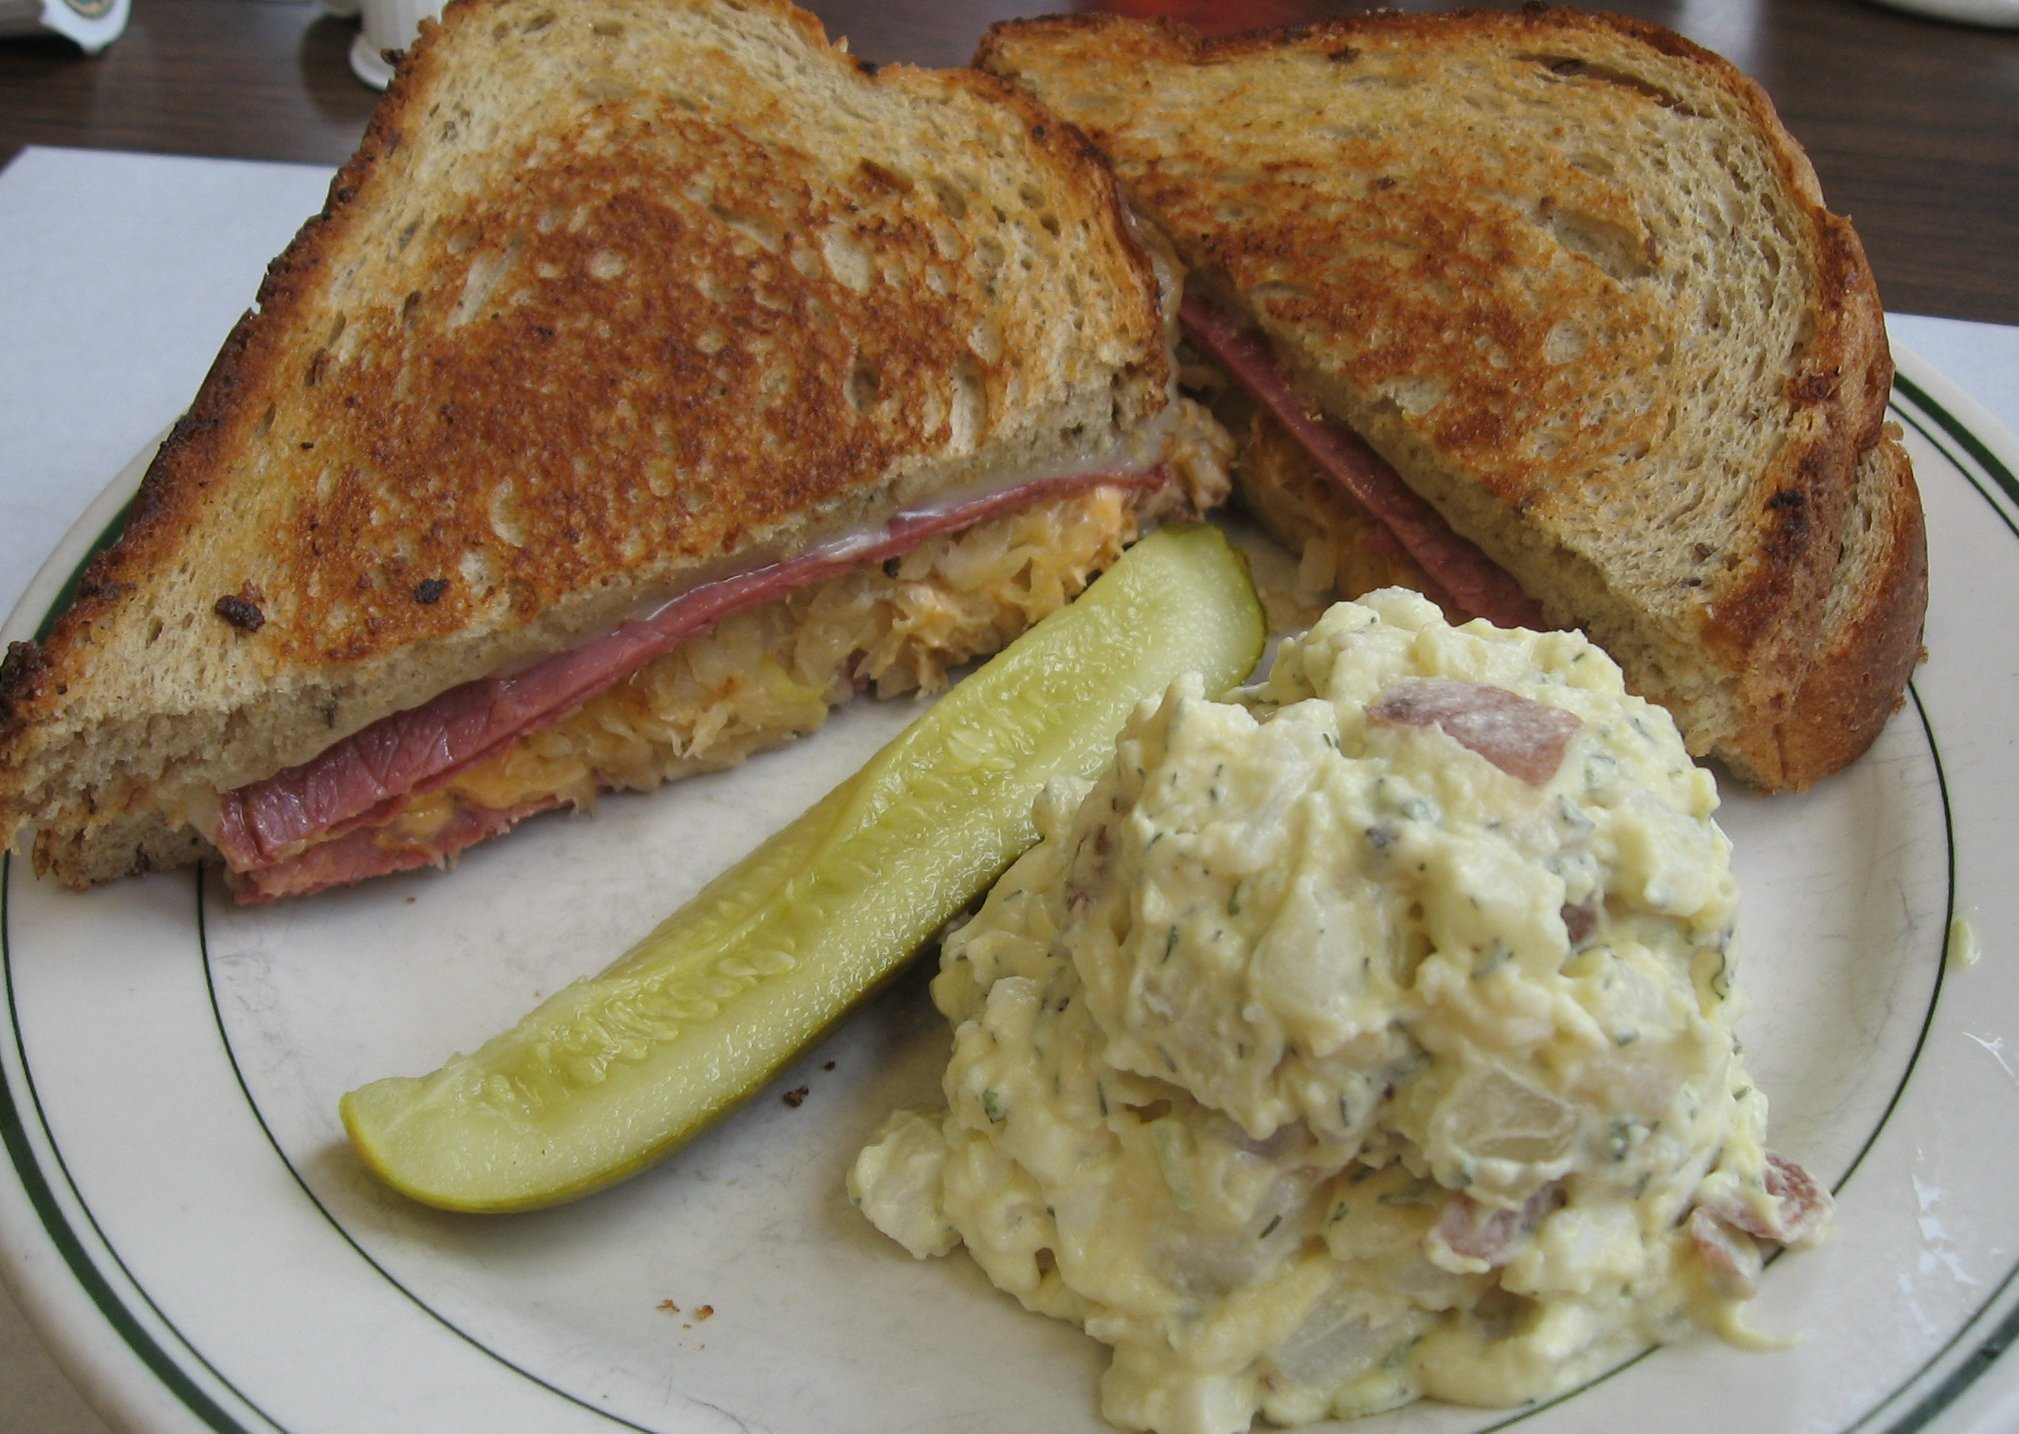 sandwich on toasted bread with potato salad and a pickle